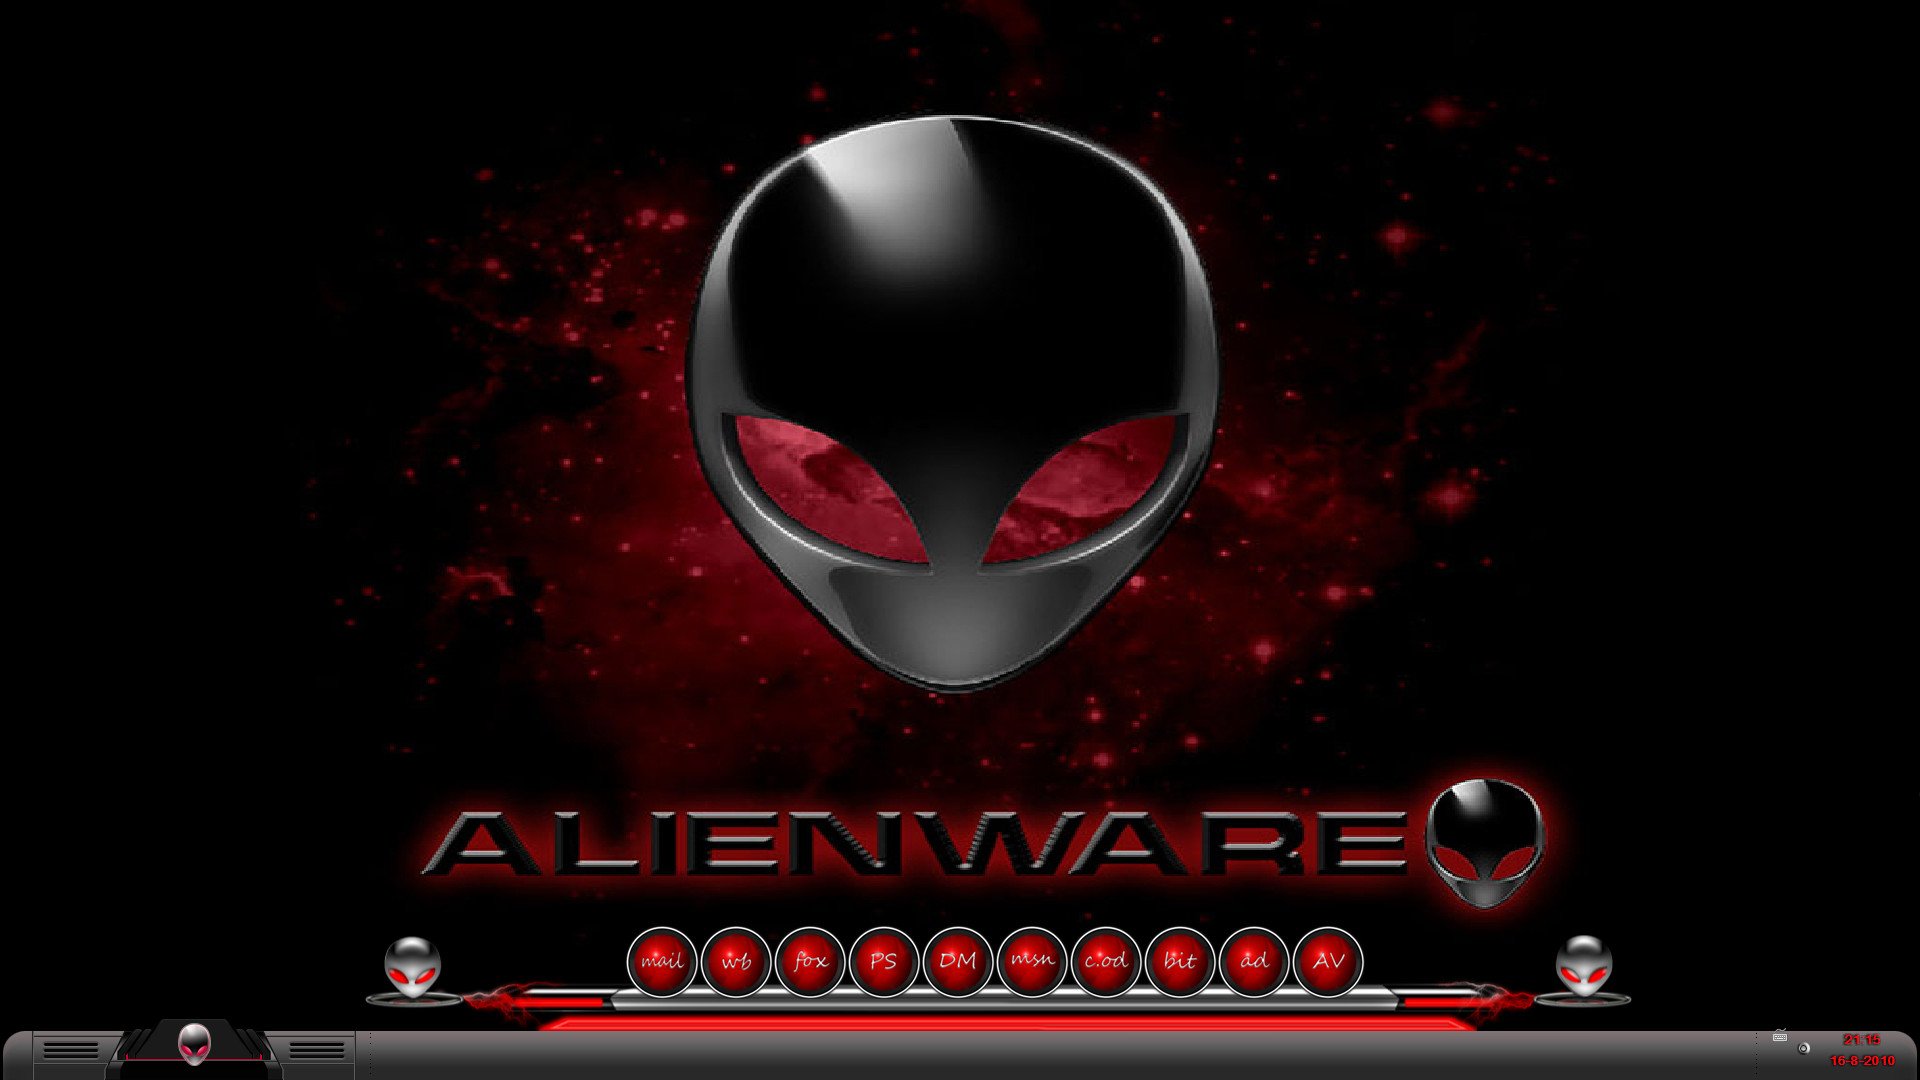 Alienware wallpapers for windows 7 wallpapersafari - 1920x1200 Alienware Wallpaper 1920x1080 Wallpapersafari